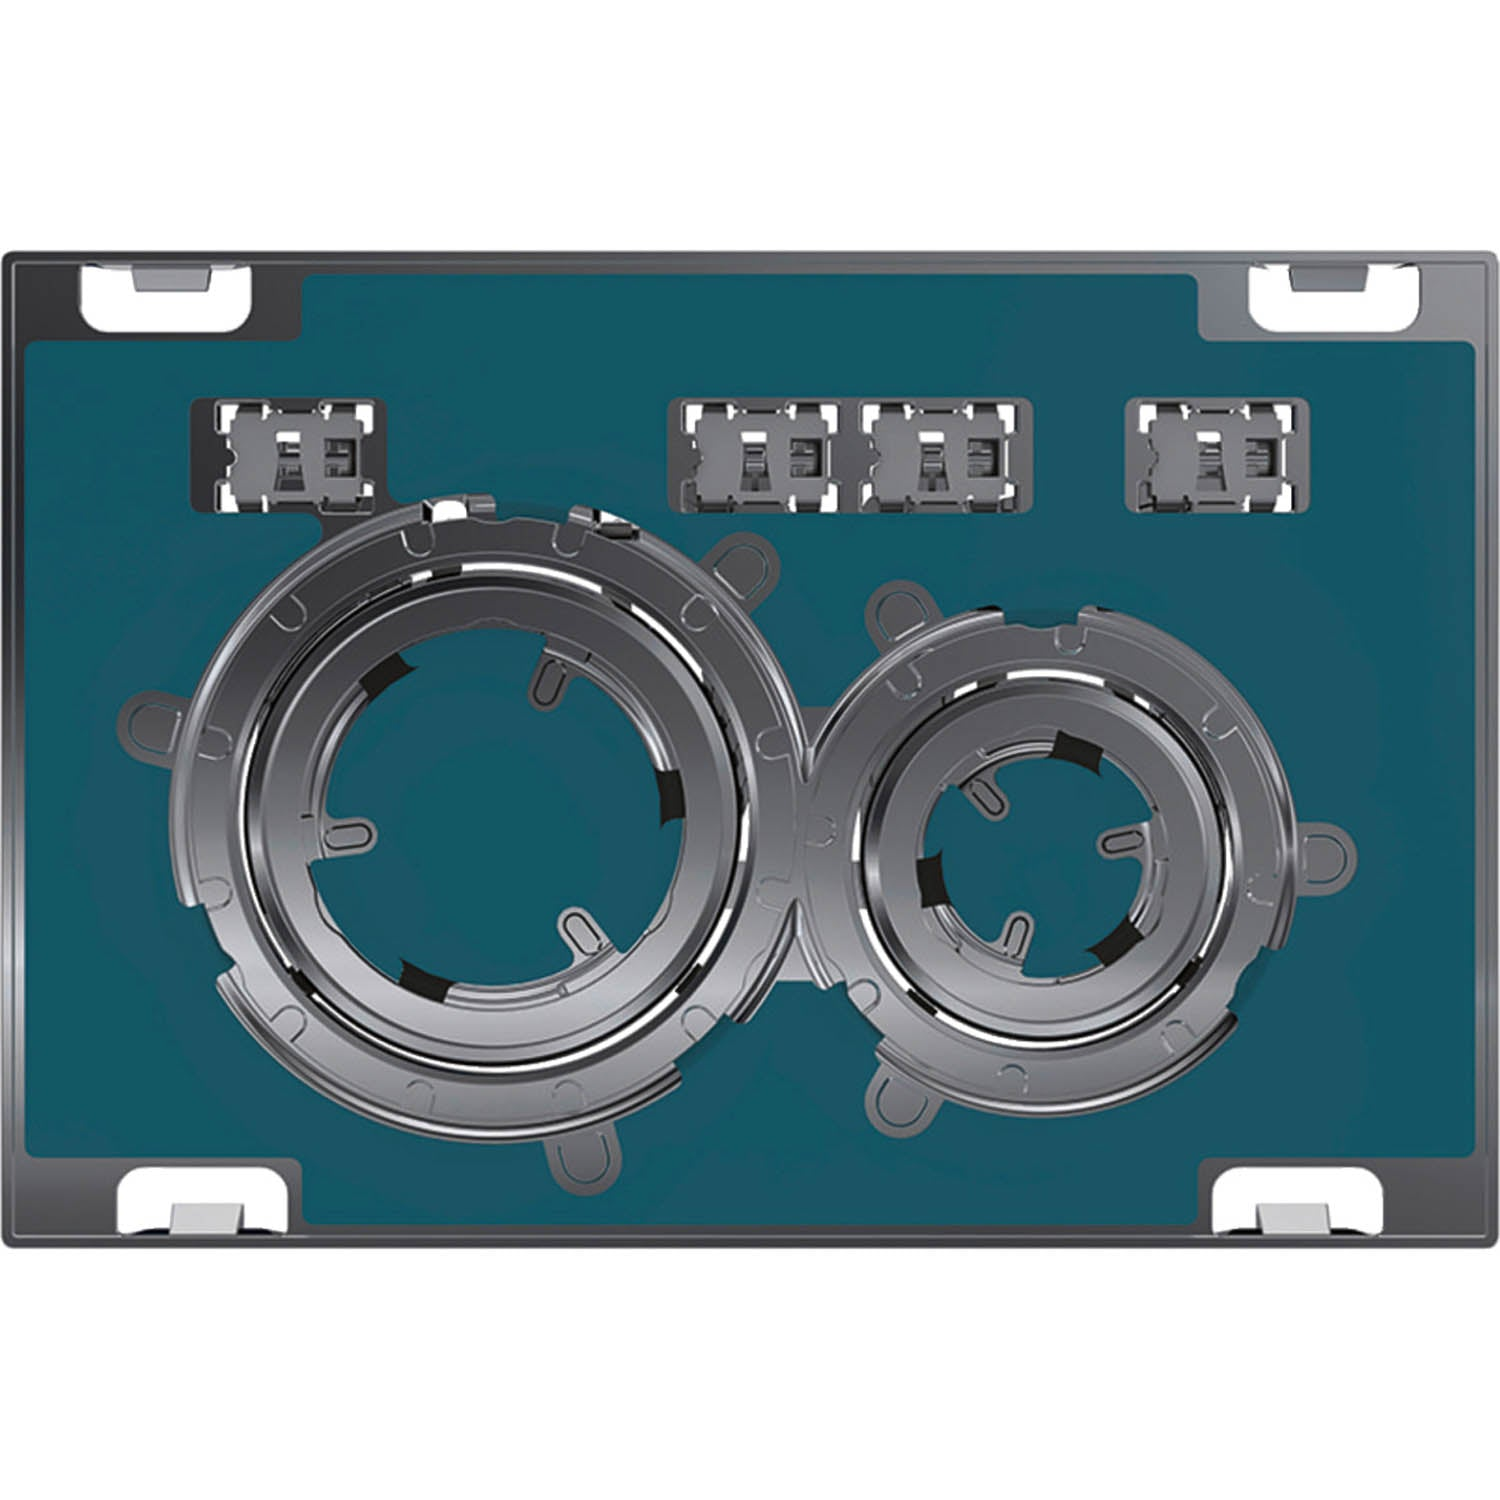 Sigma Round Dual Action Flush Plate with a custom colour finish on a white background